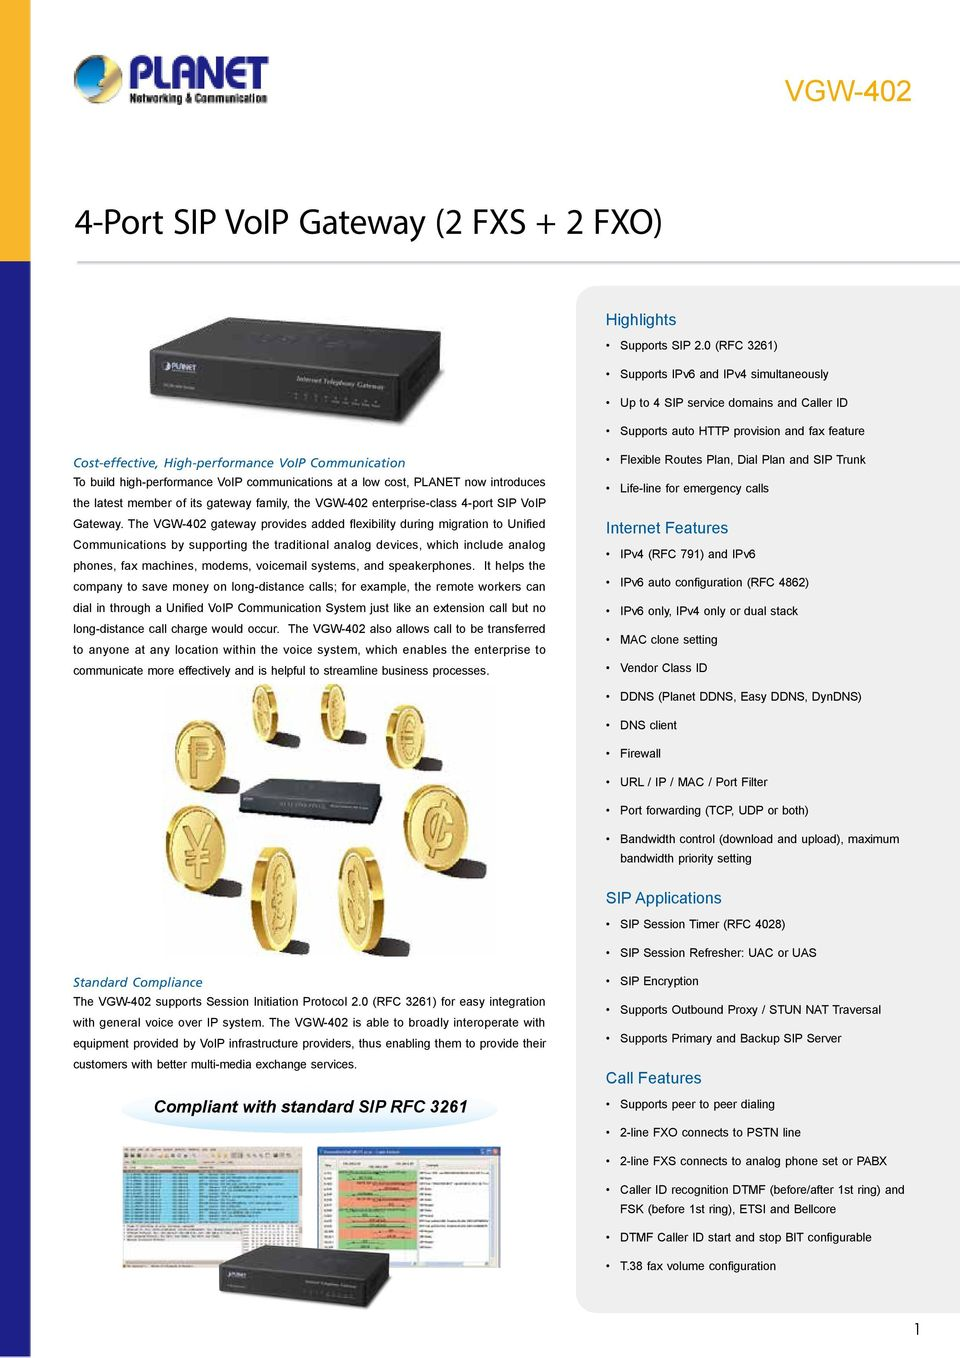 high-performance VoIP communications at a low cost, PLANET now introduces the latest member of its gateway family, the VGW-402 enterprise-class 4-port SIP VoIP Gateway.